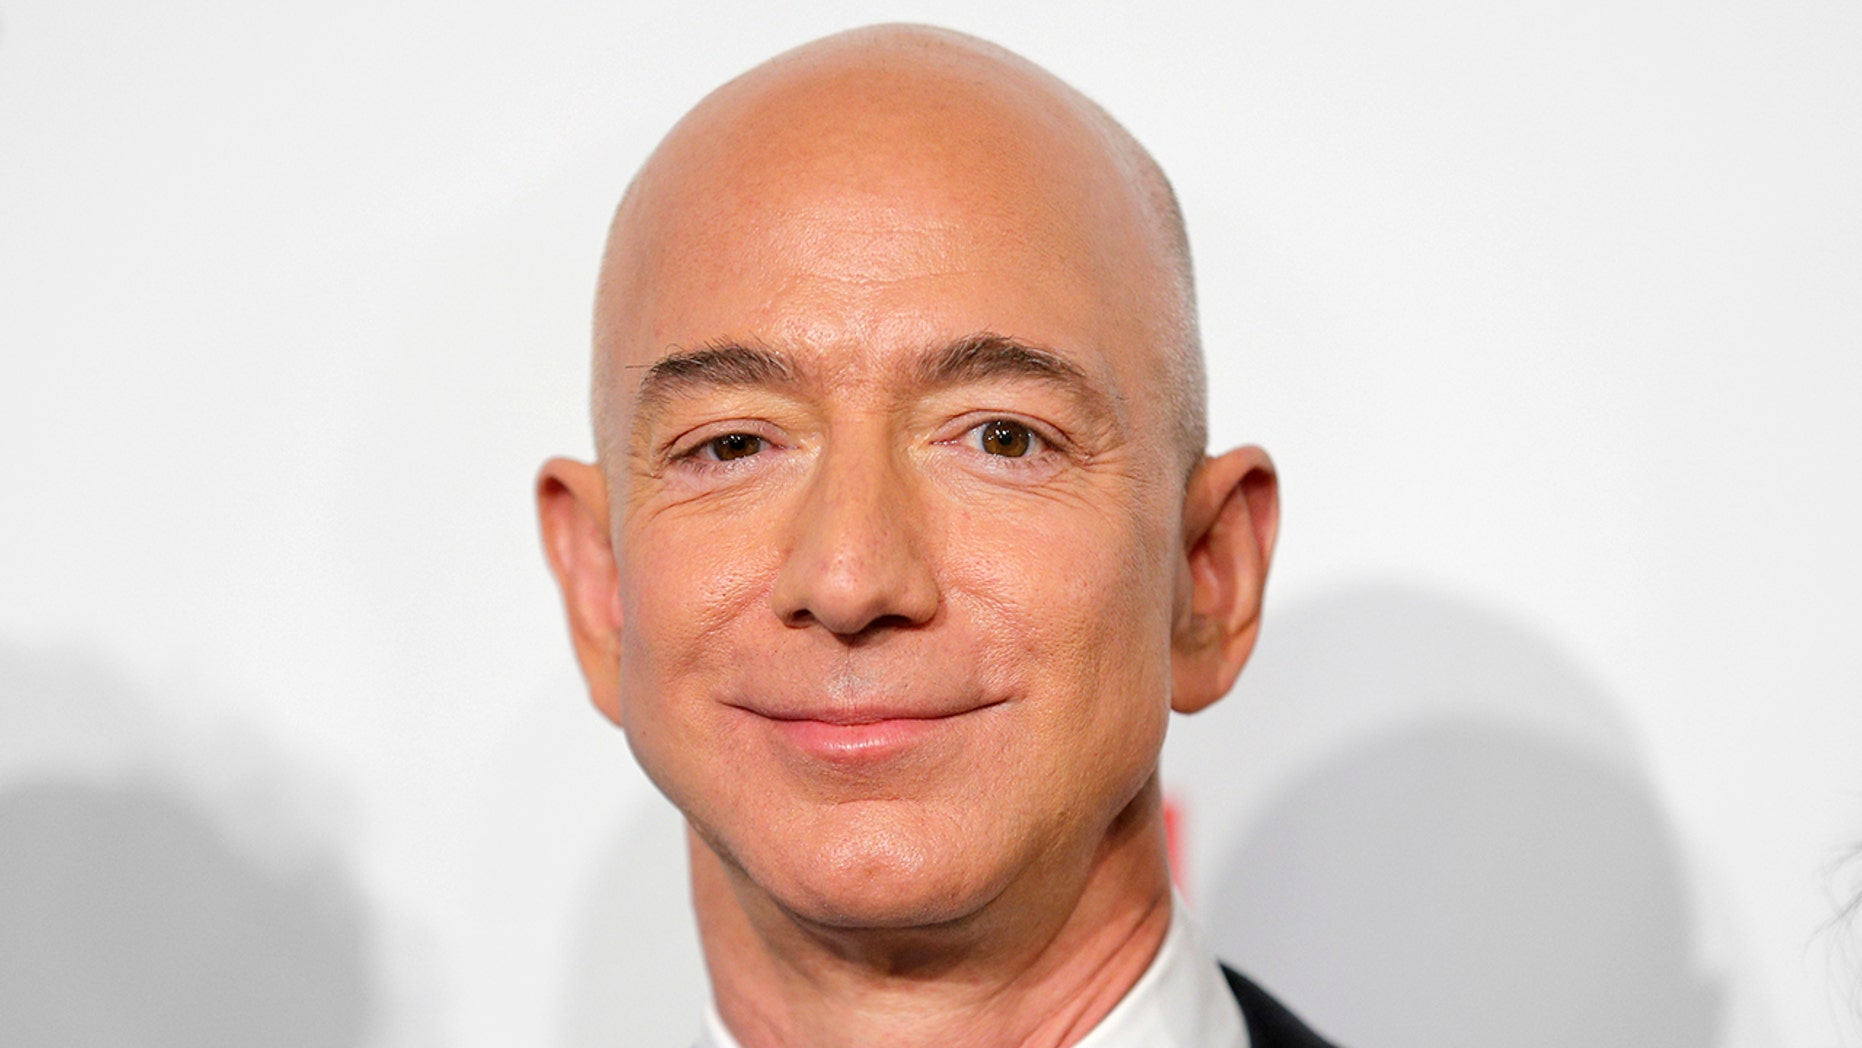 File photo:BERLIN, GERMANY - APRIL 24: Jeff Bezos attends the Axel Springer Award 2018 on April 24, 2018 in Berlin, Germany.(Photo by Franziska Krug/Getty Images)